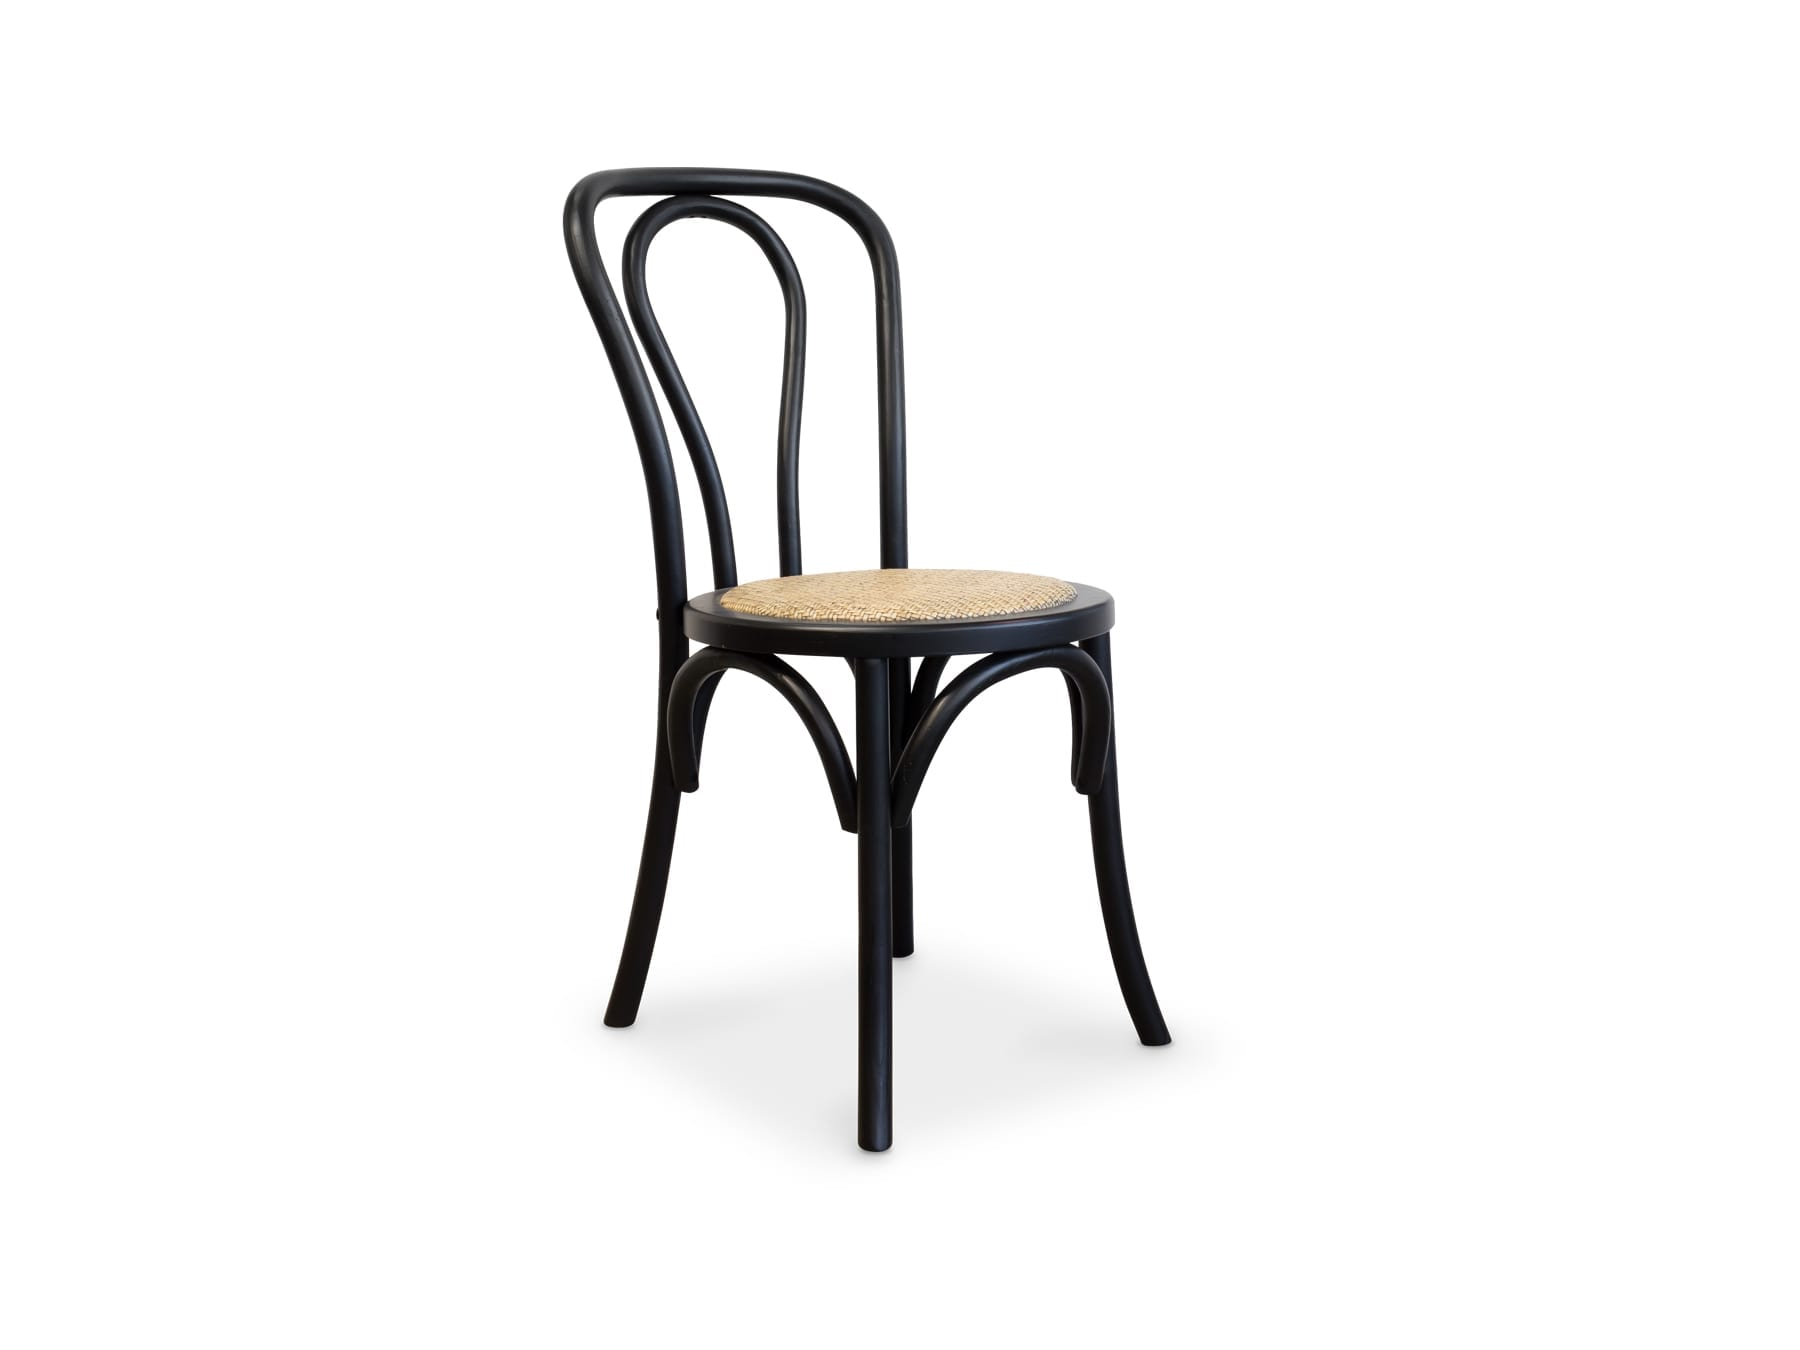 bentwood dining chair office elevation cad block global design mckenzie and willis